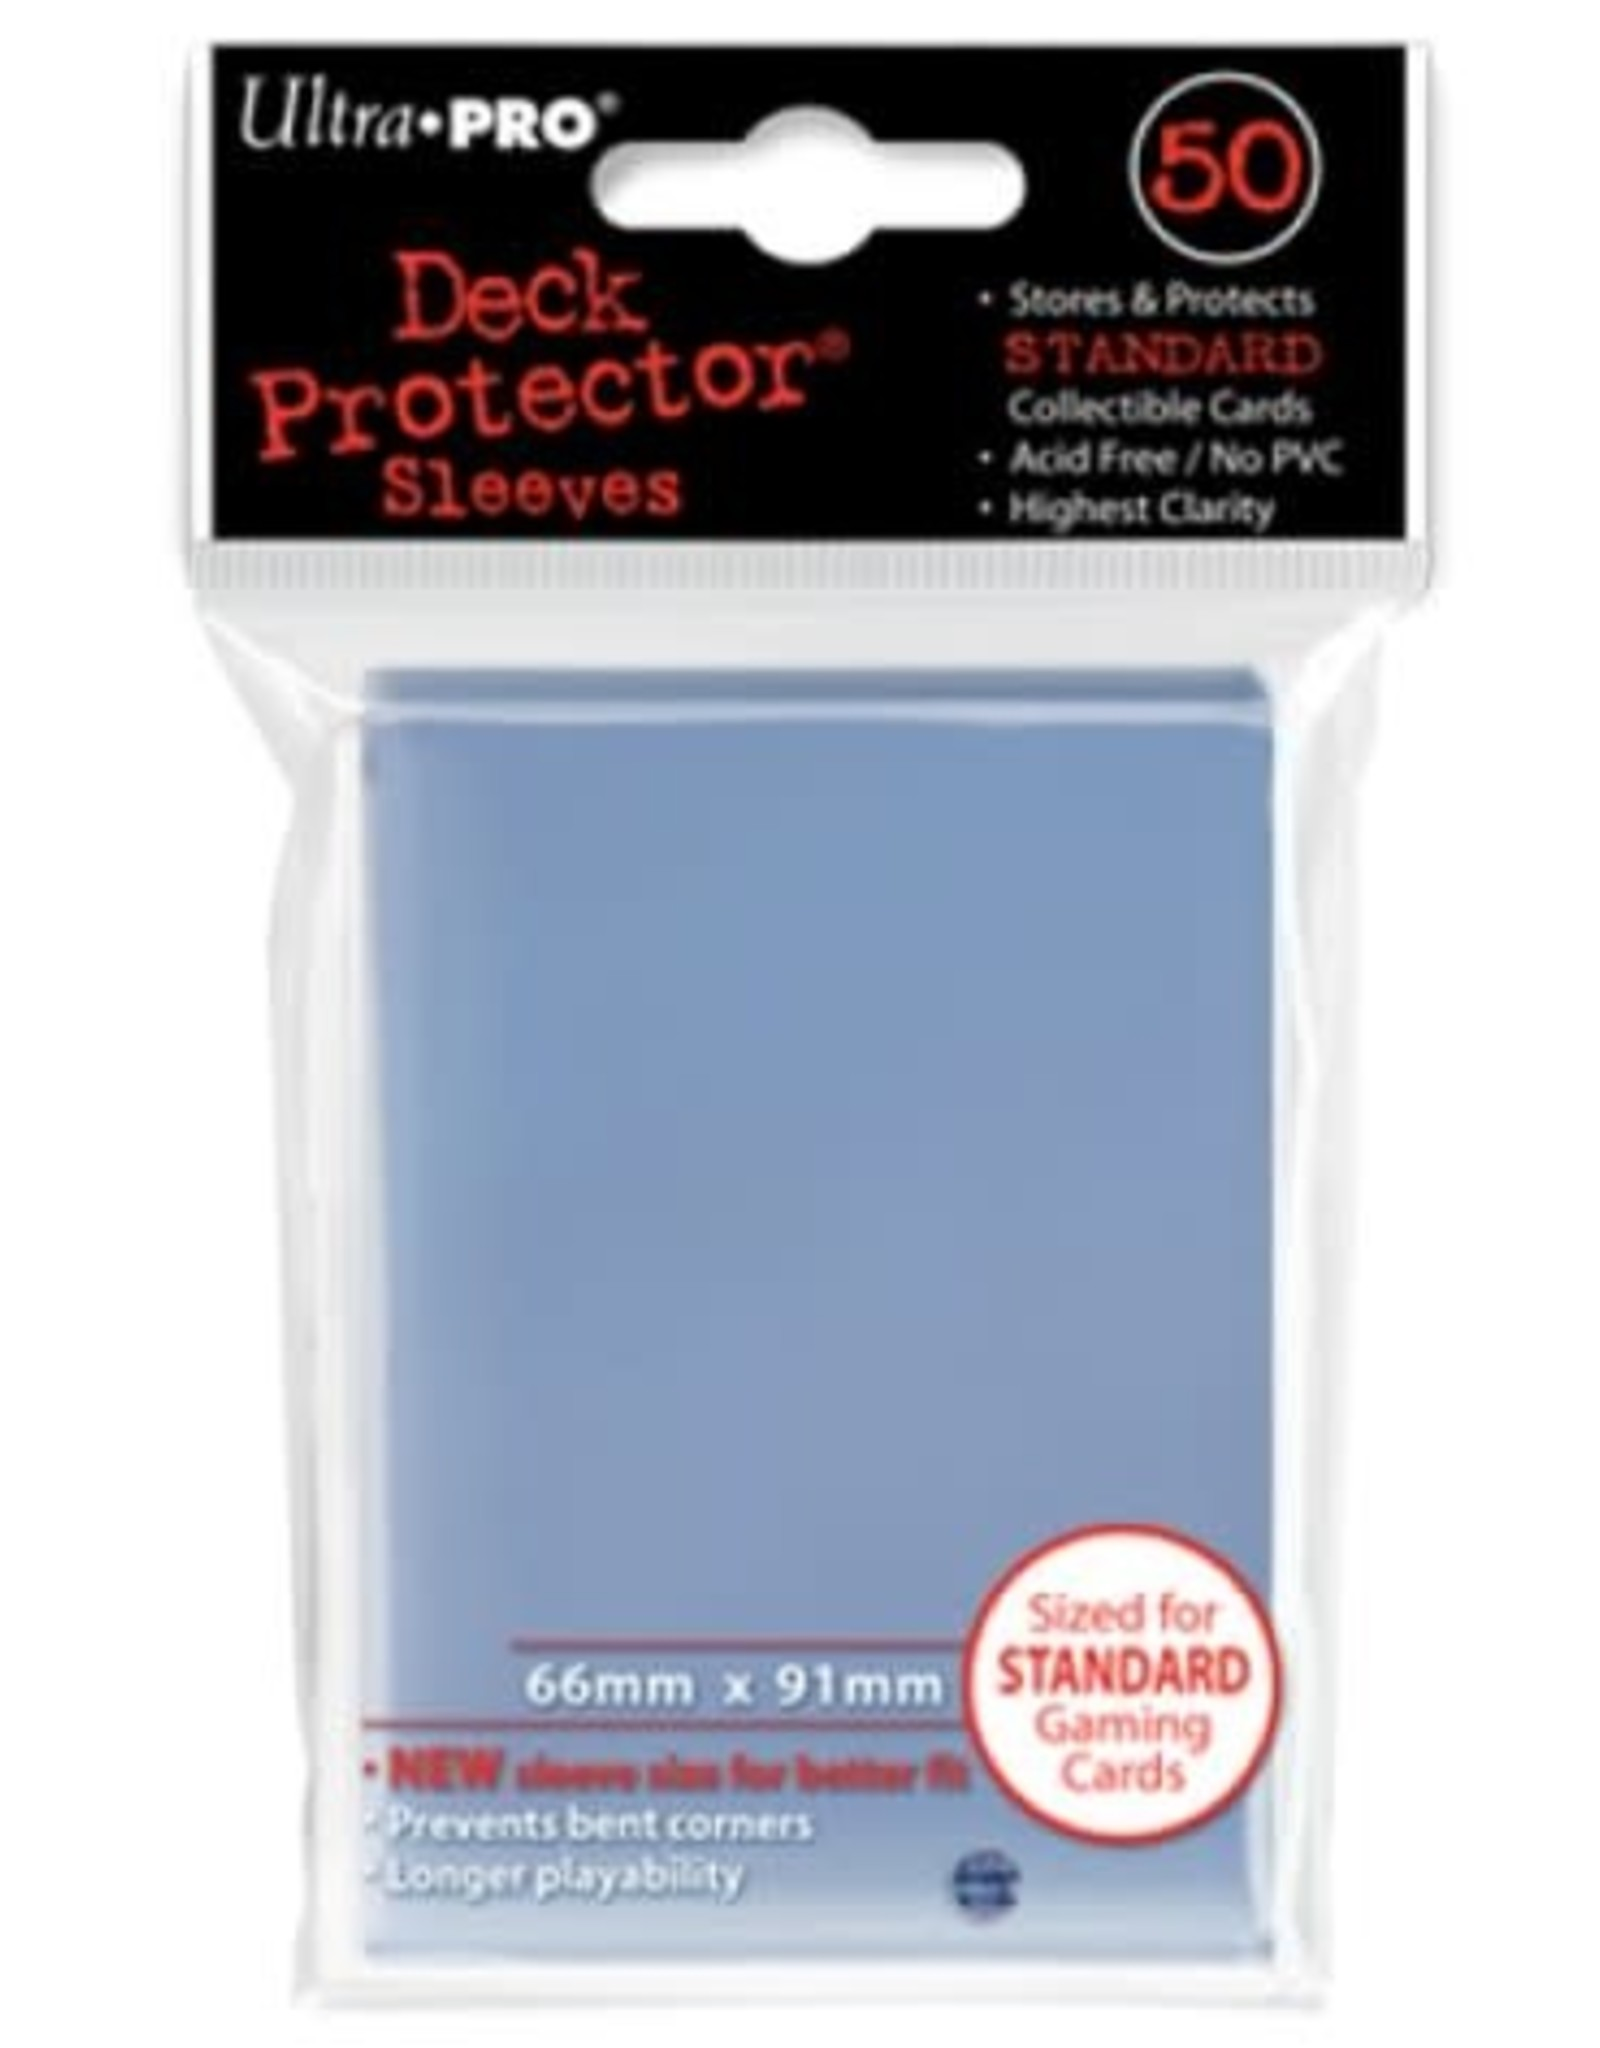 Ultra Pro Deck Protector Sleeves Clear (50)